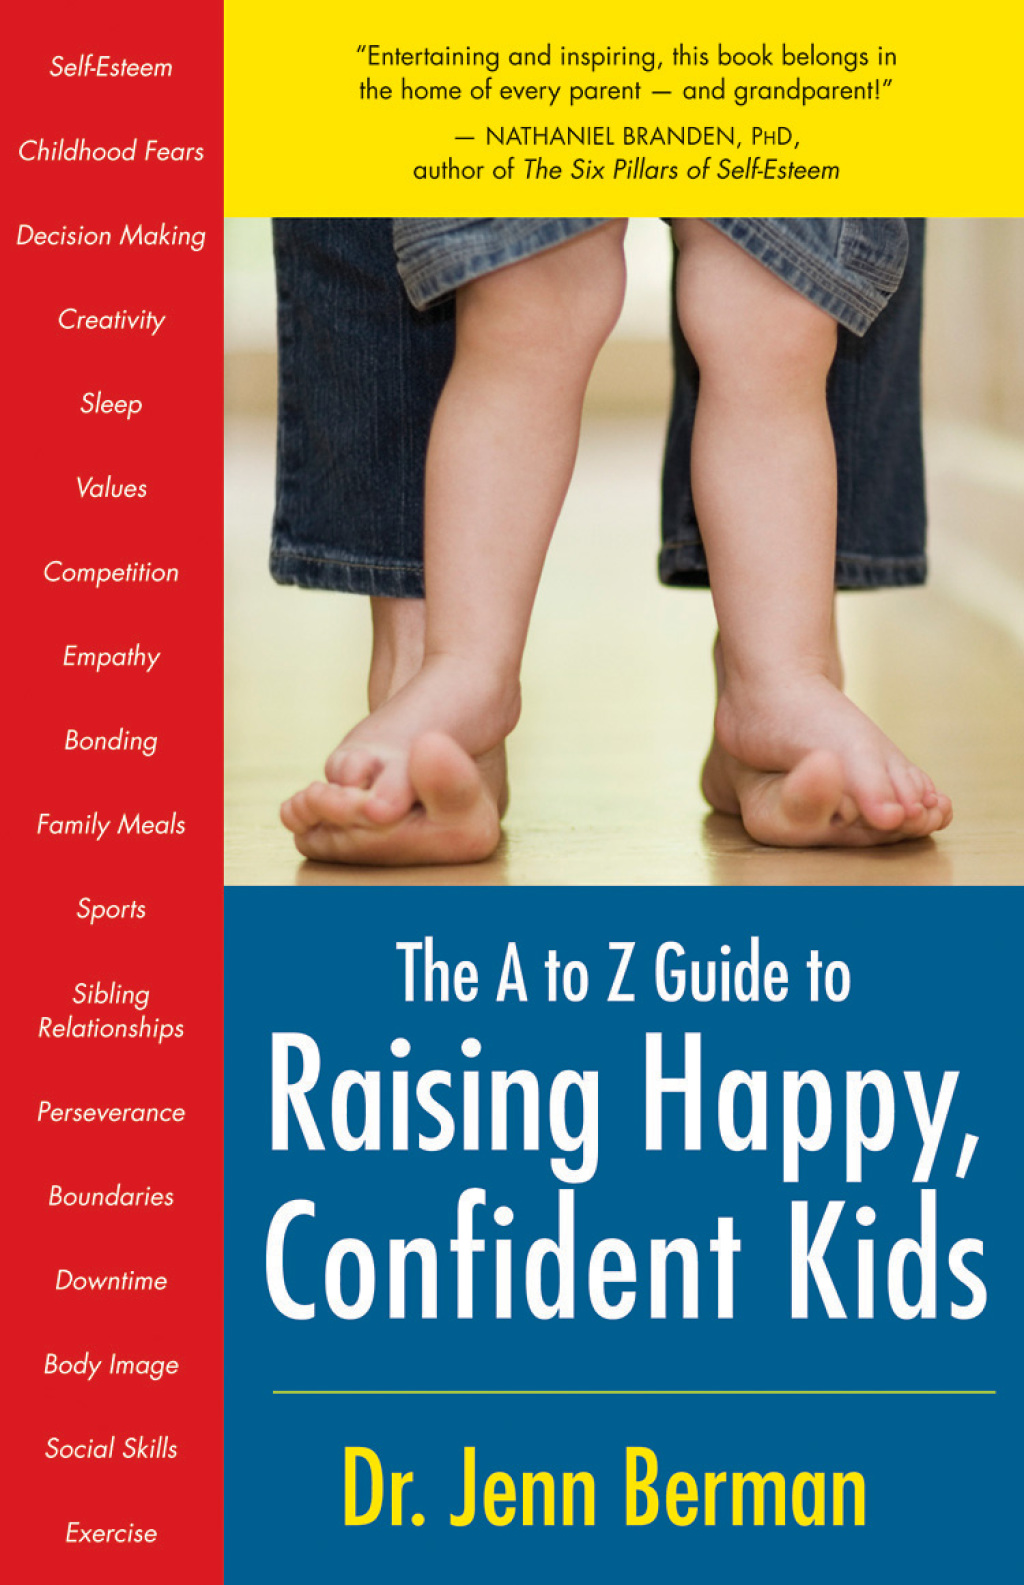 The to Z Guide to Raising Happy, Confident Kids (ebook) eBooks